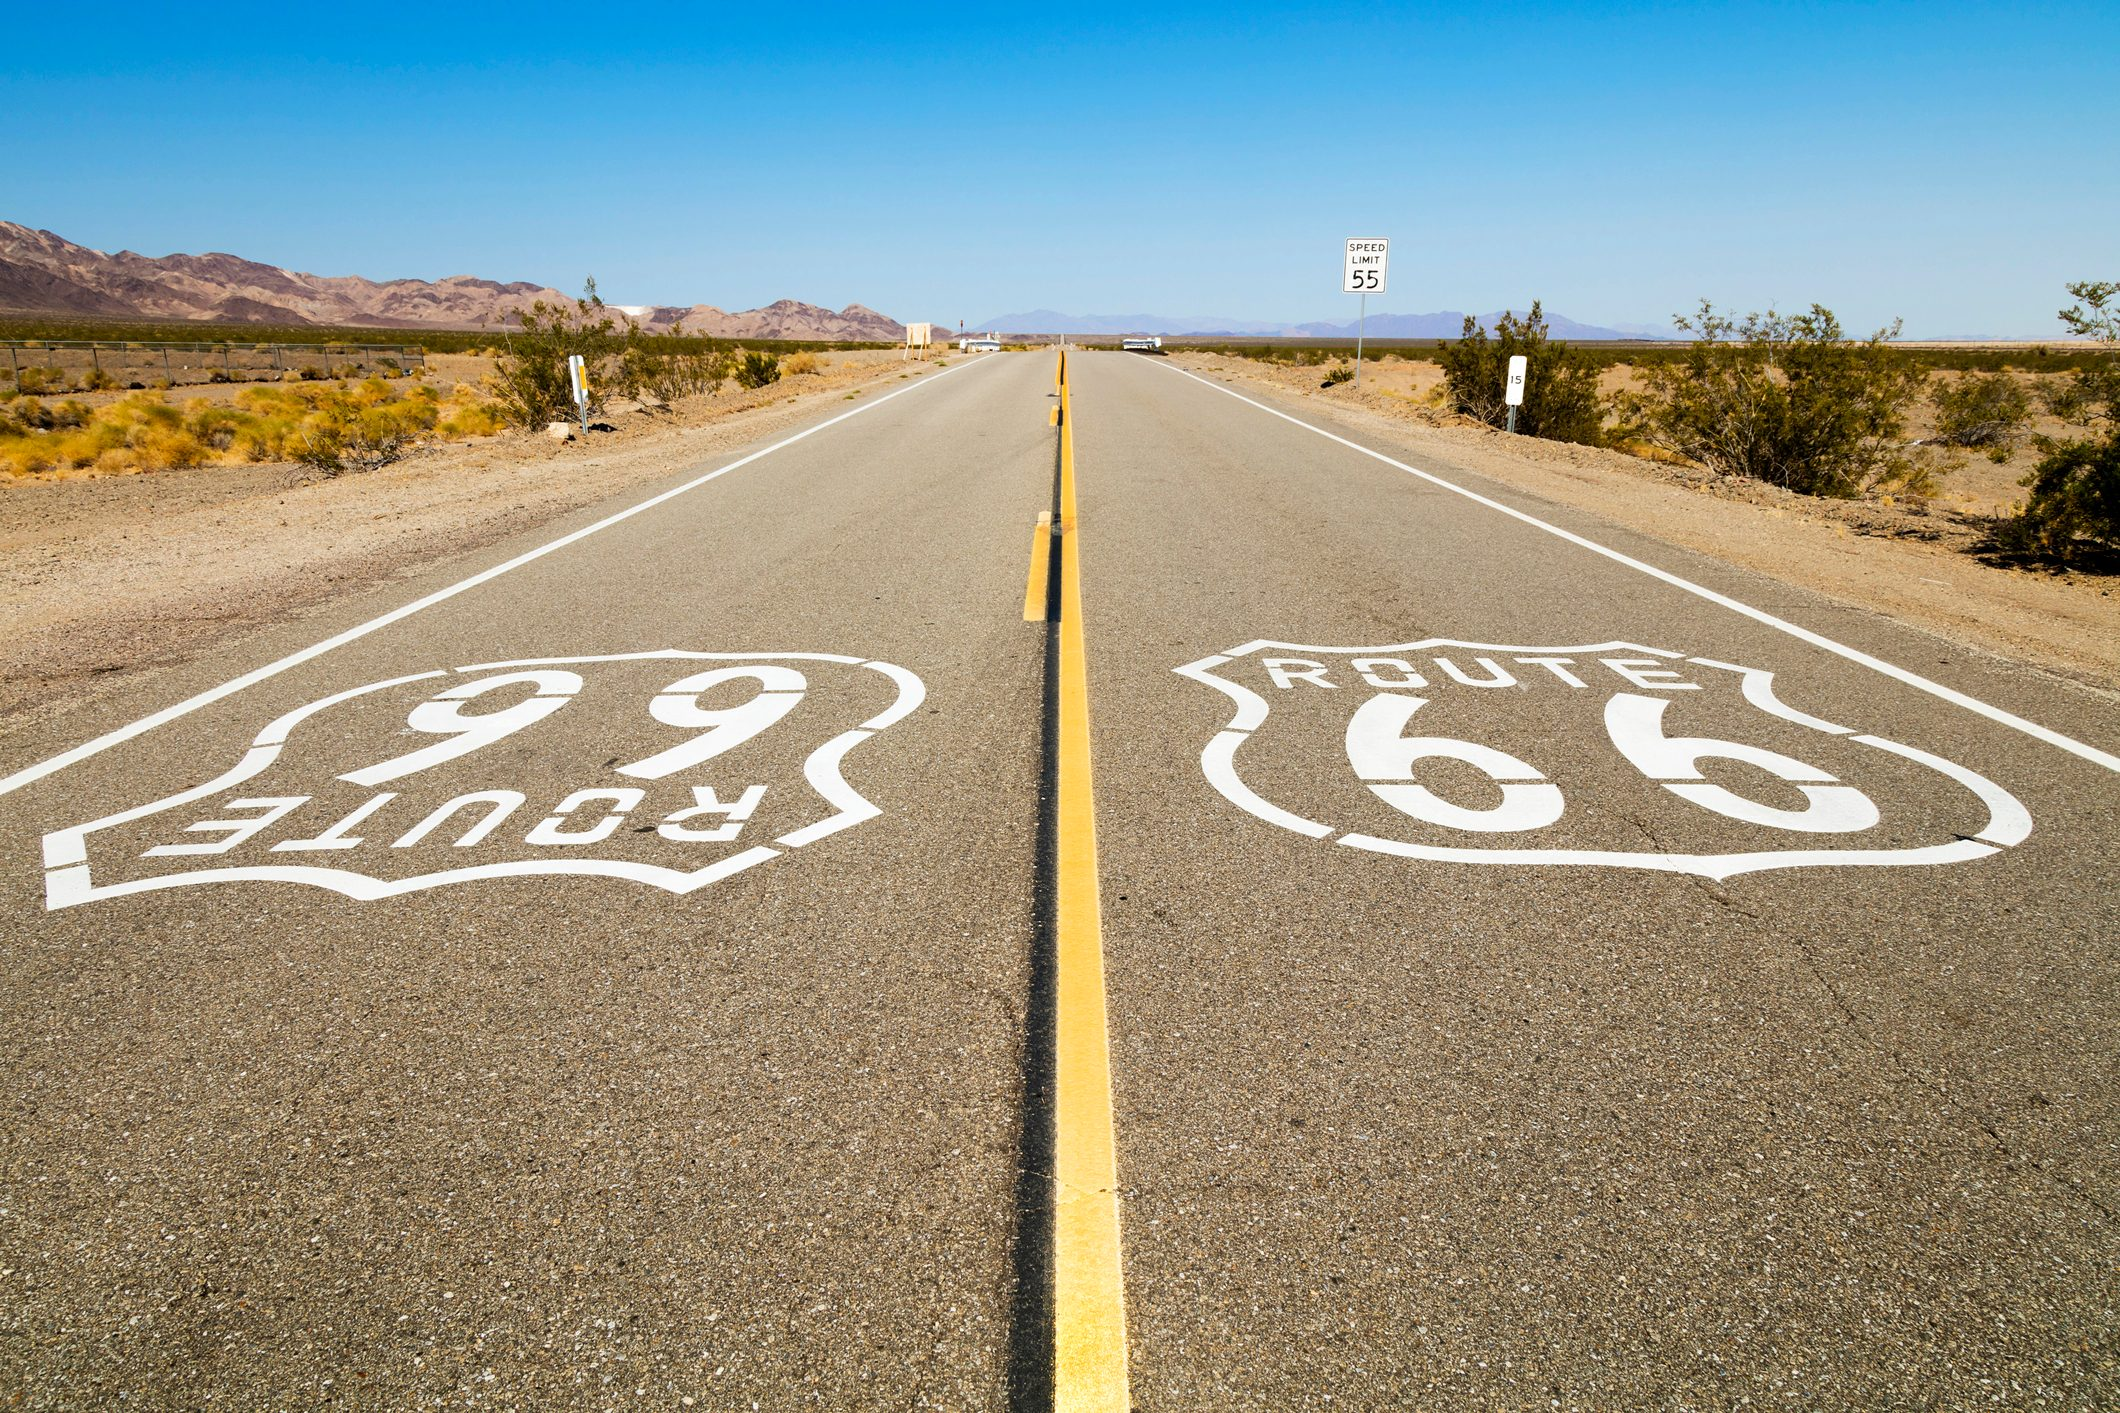 Route 66 Sign on the road, California, USA